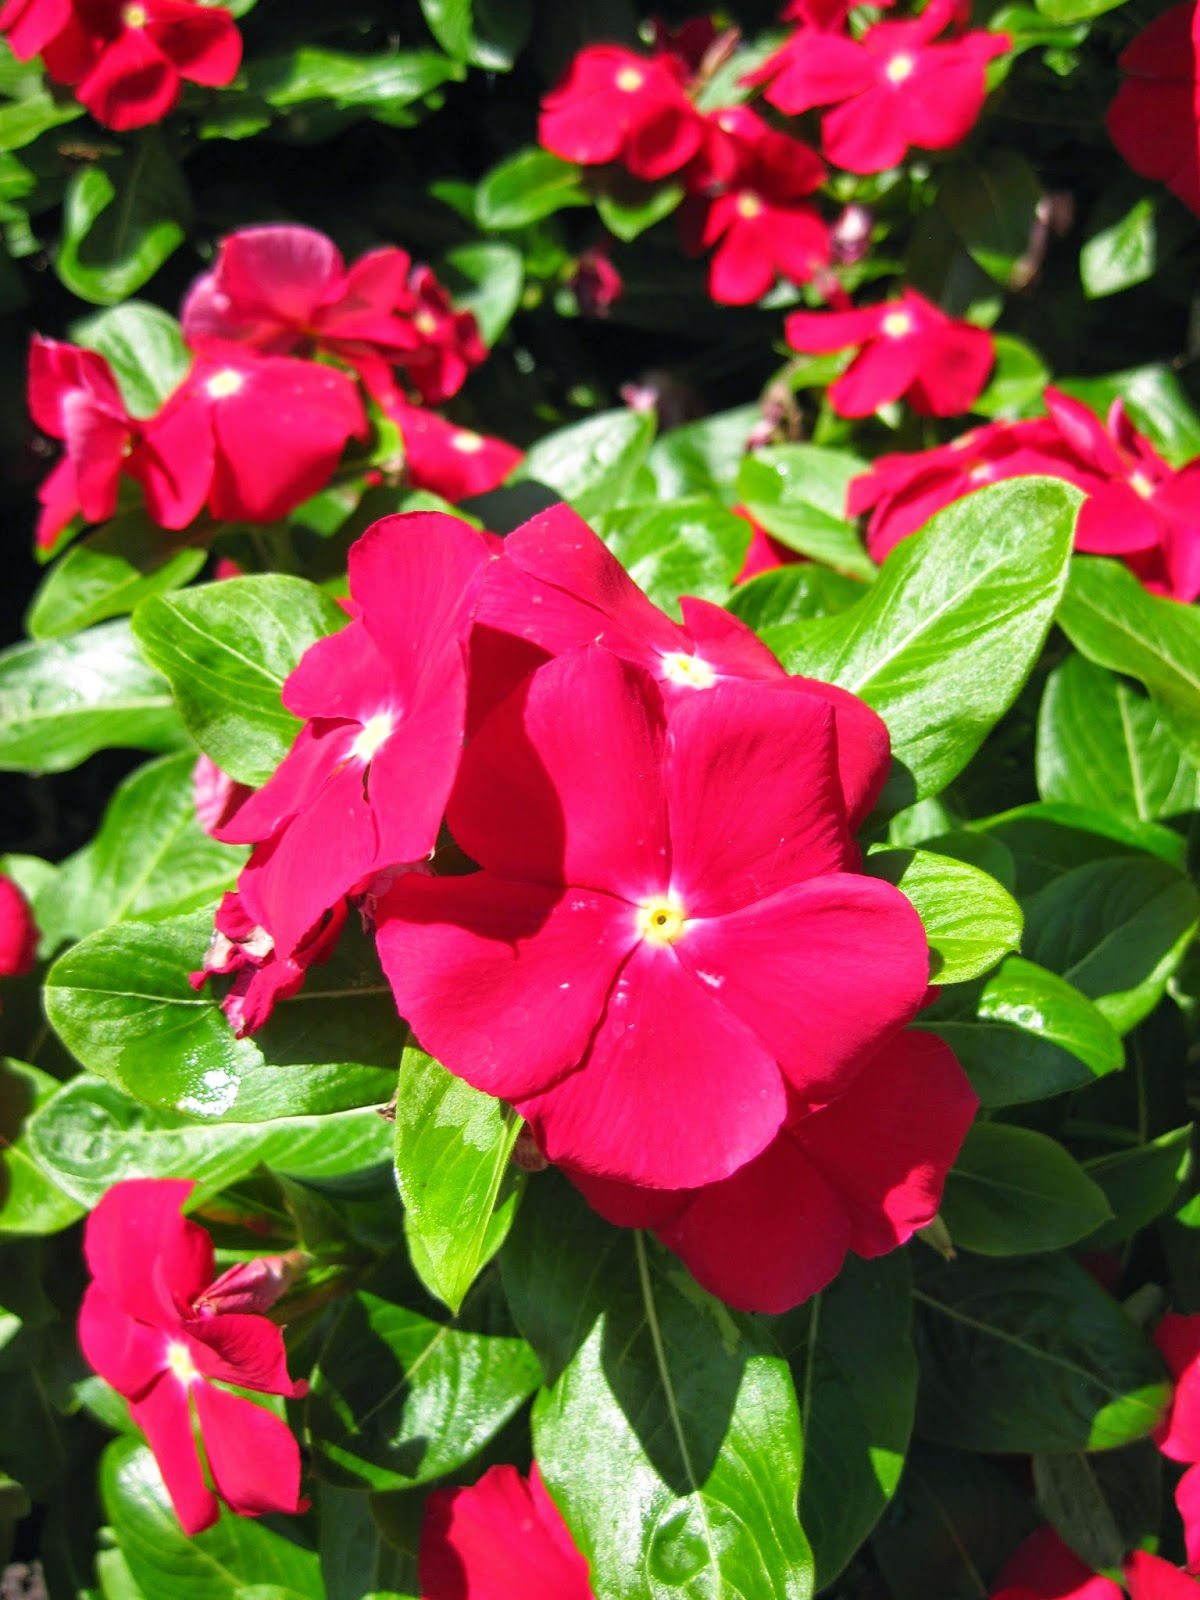 Annual vinca catharanthus roseus rotary botanical gardens the research and testing continues on this beautiful and functional annual vinca also called annual periwinkle and madagascar periwinkle izmirmasajfo Gallery